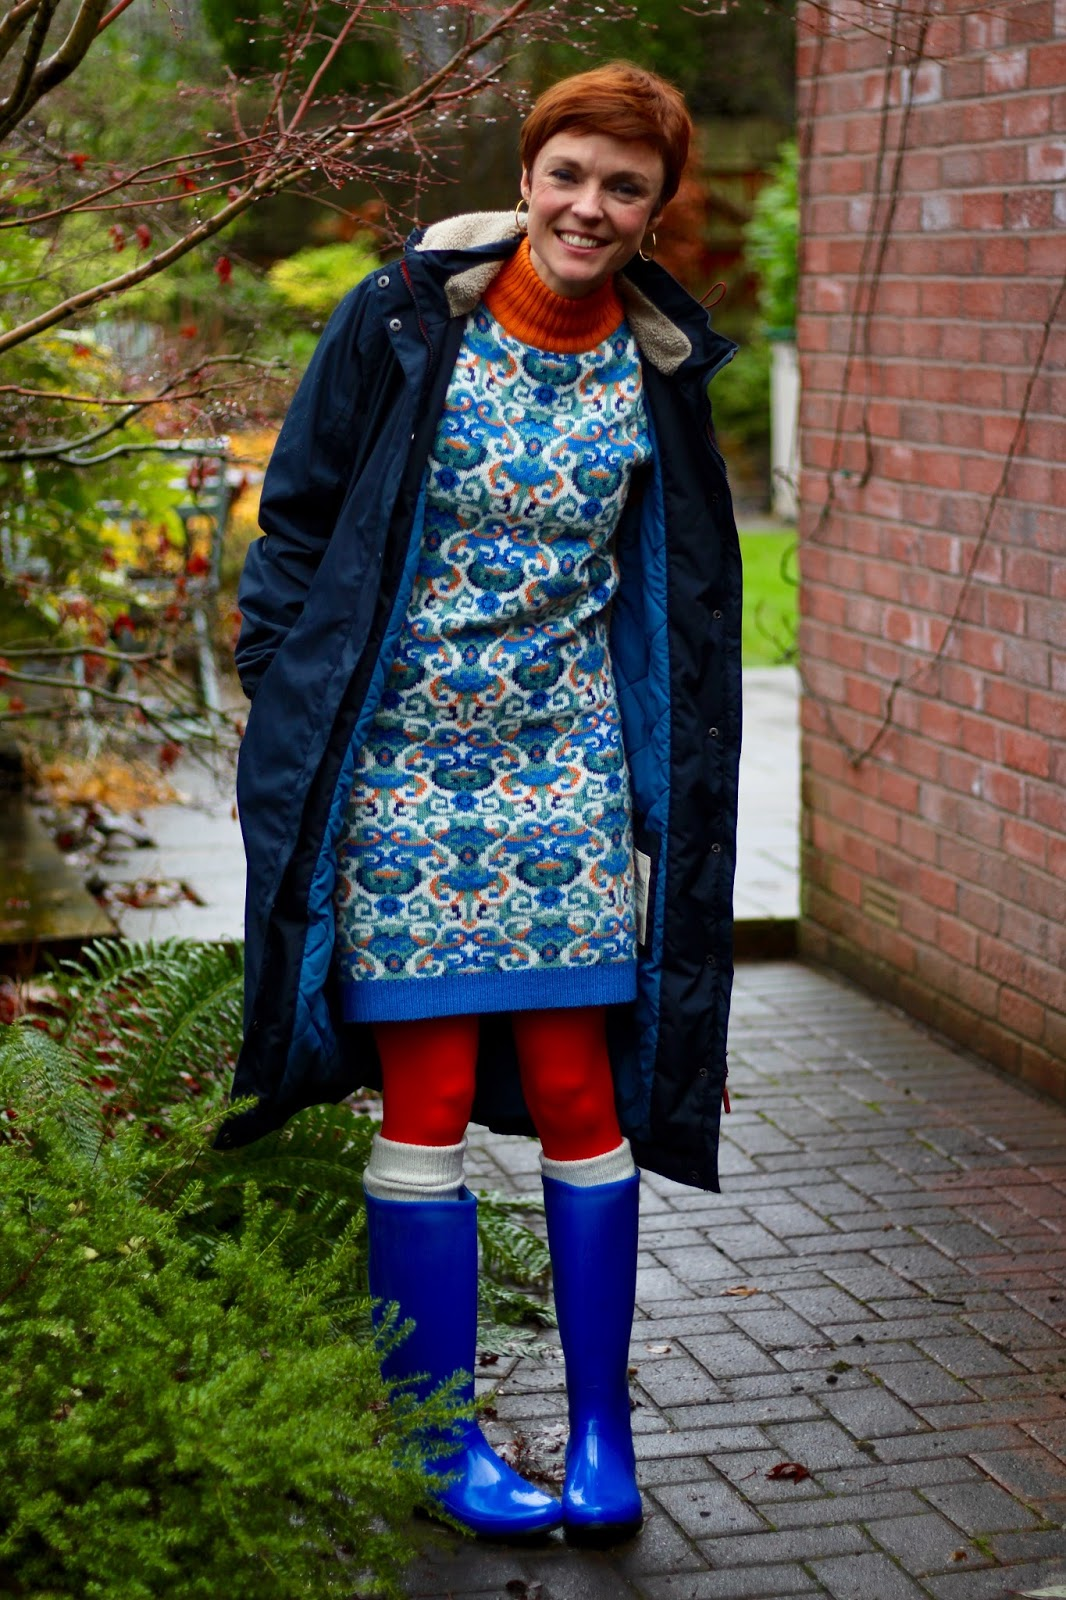 Wearing colour in wet weather | Fake fabulous